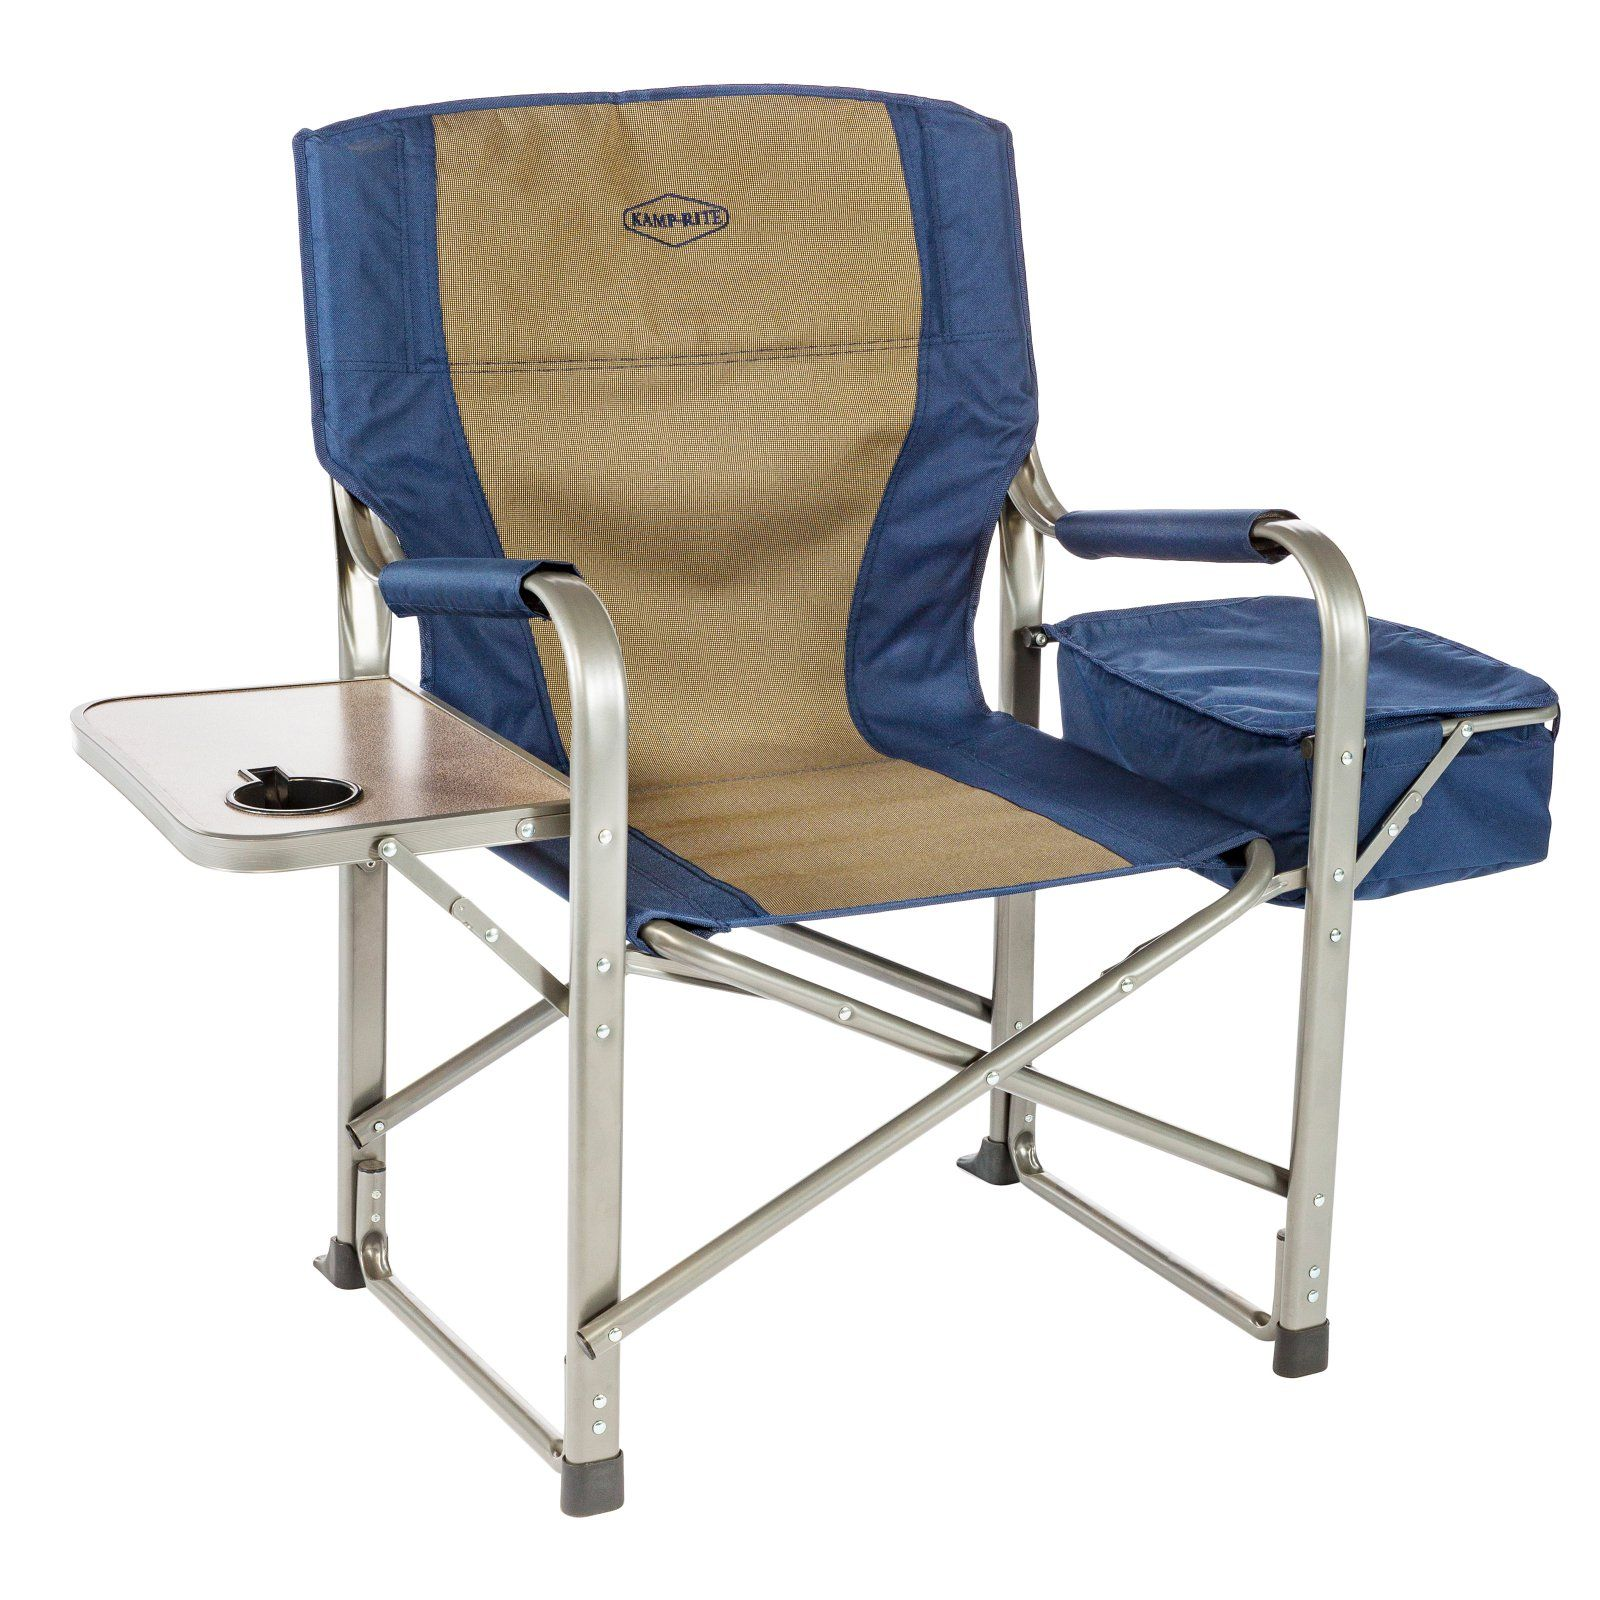 Folding Camp Chair With Side Table Outdoor Kamp Rite Directors Chair With Side Table And Built In